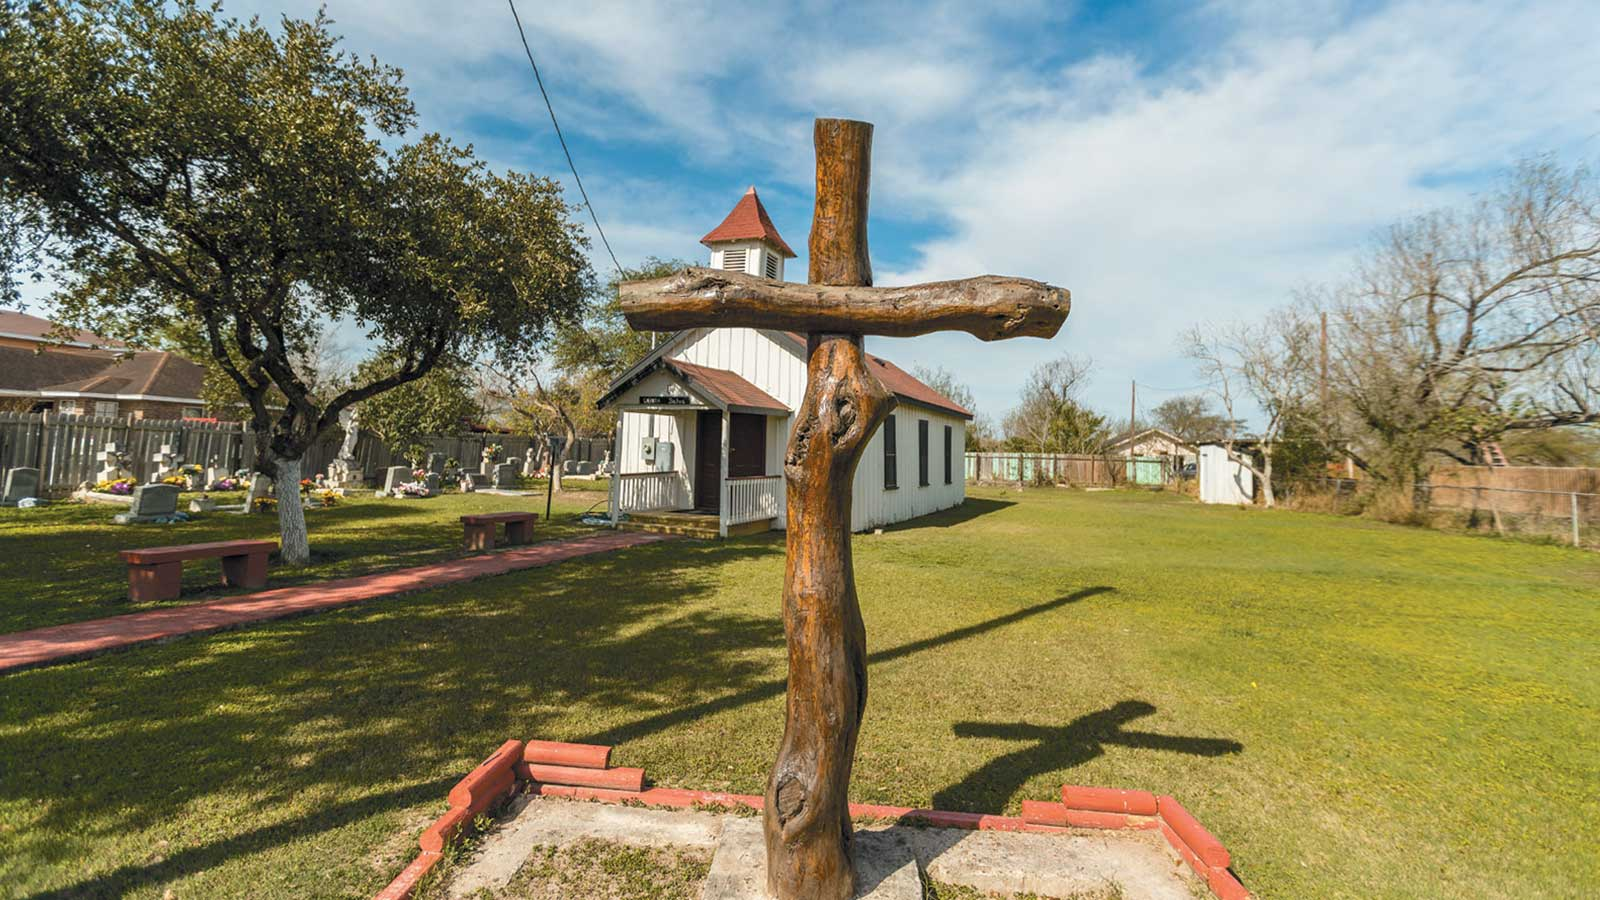 The Eli Jackson Methodist Church and cemetery, located on a ranch once operated by Nathaniel and Matilda Jackson, who are believed to have helped slaves escape to Mexico, San Juan, Texas, 2019